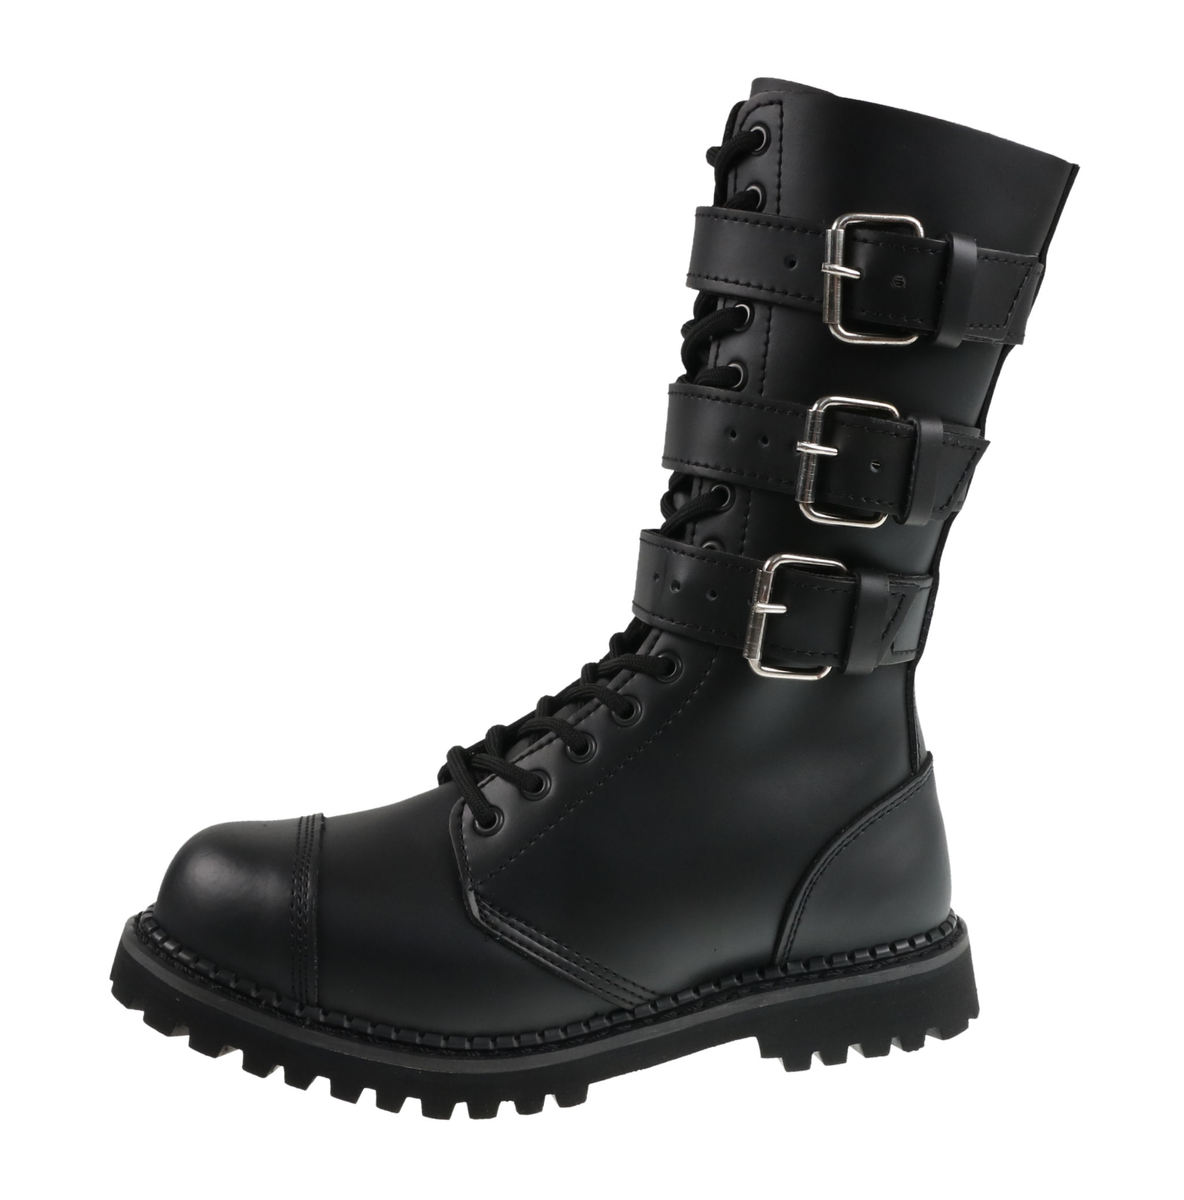 boty kožené unisex - Phantom Boots with Buckle - BRANDIT - 9005-black